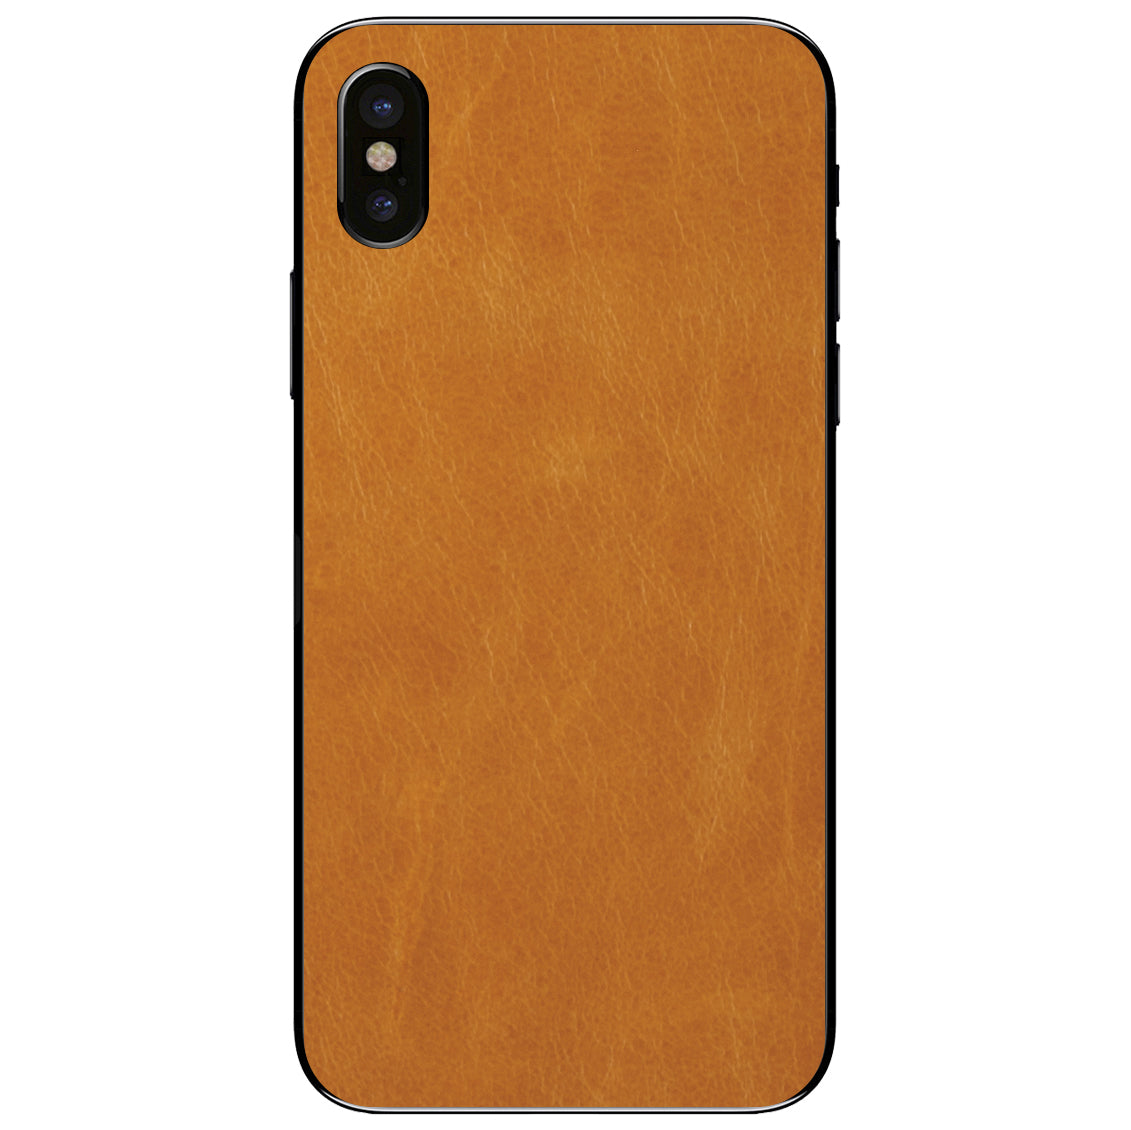 new styles f7335 3d032 Tan iPhone XS Leather Skin